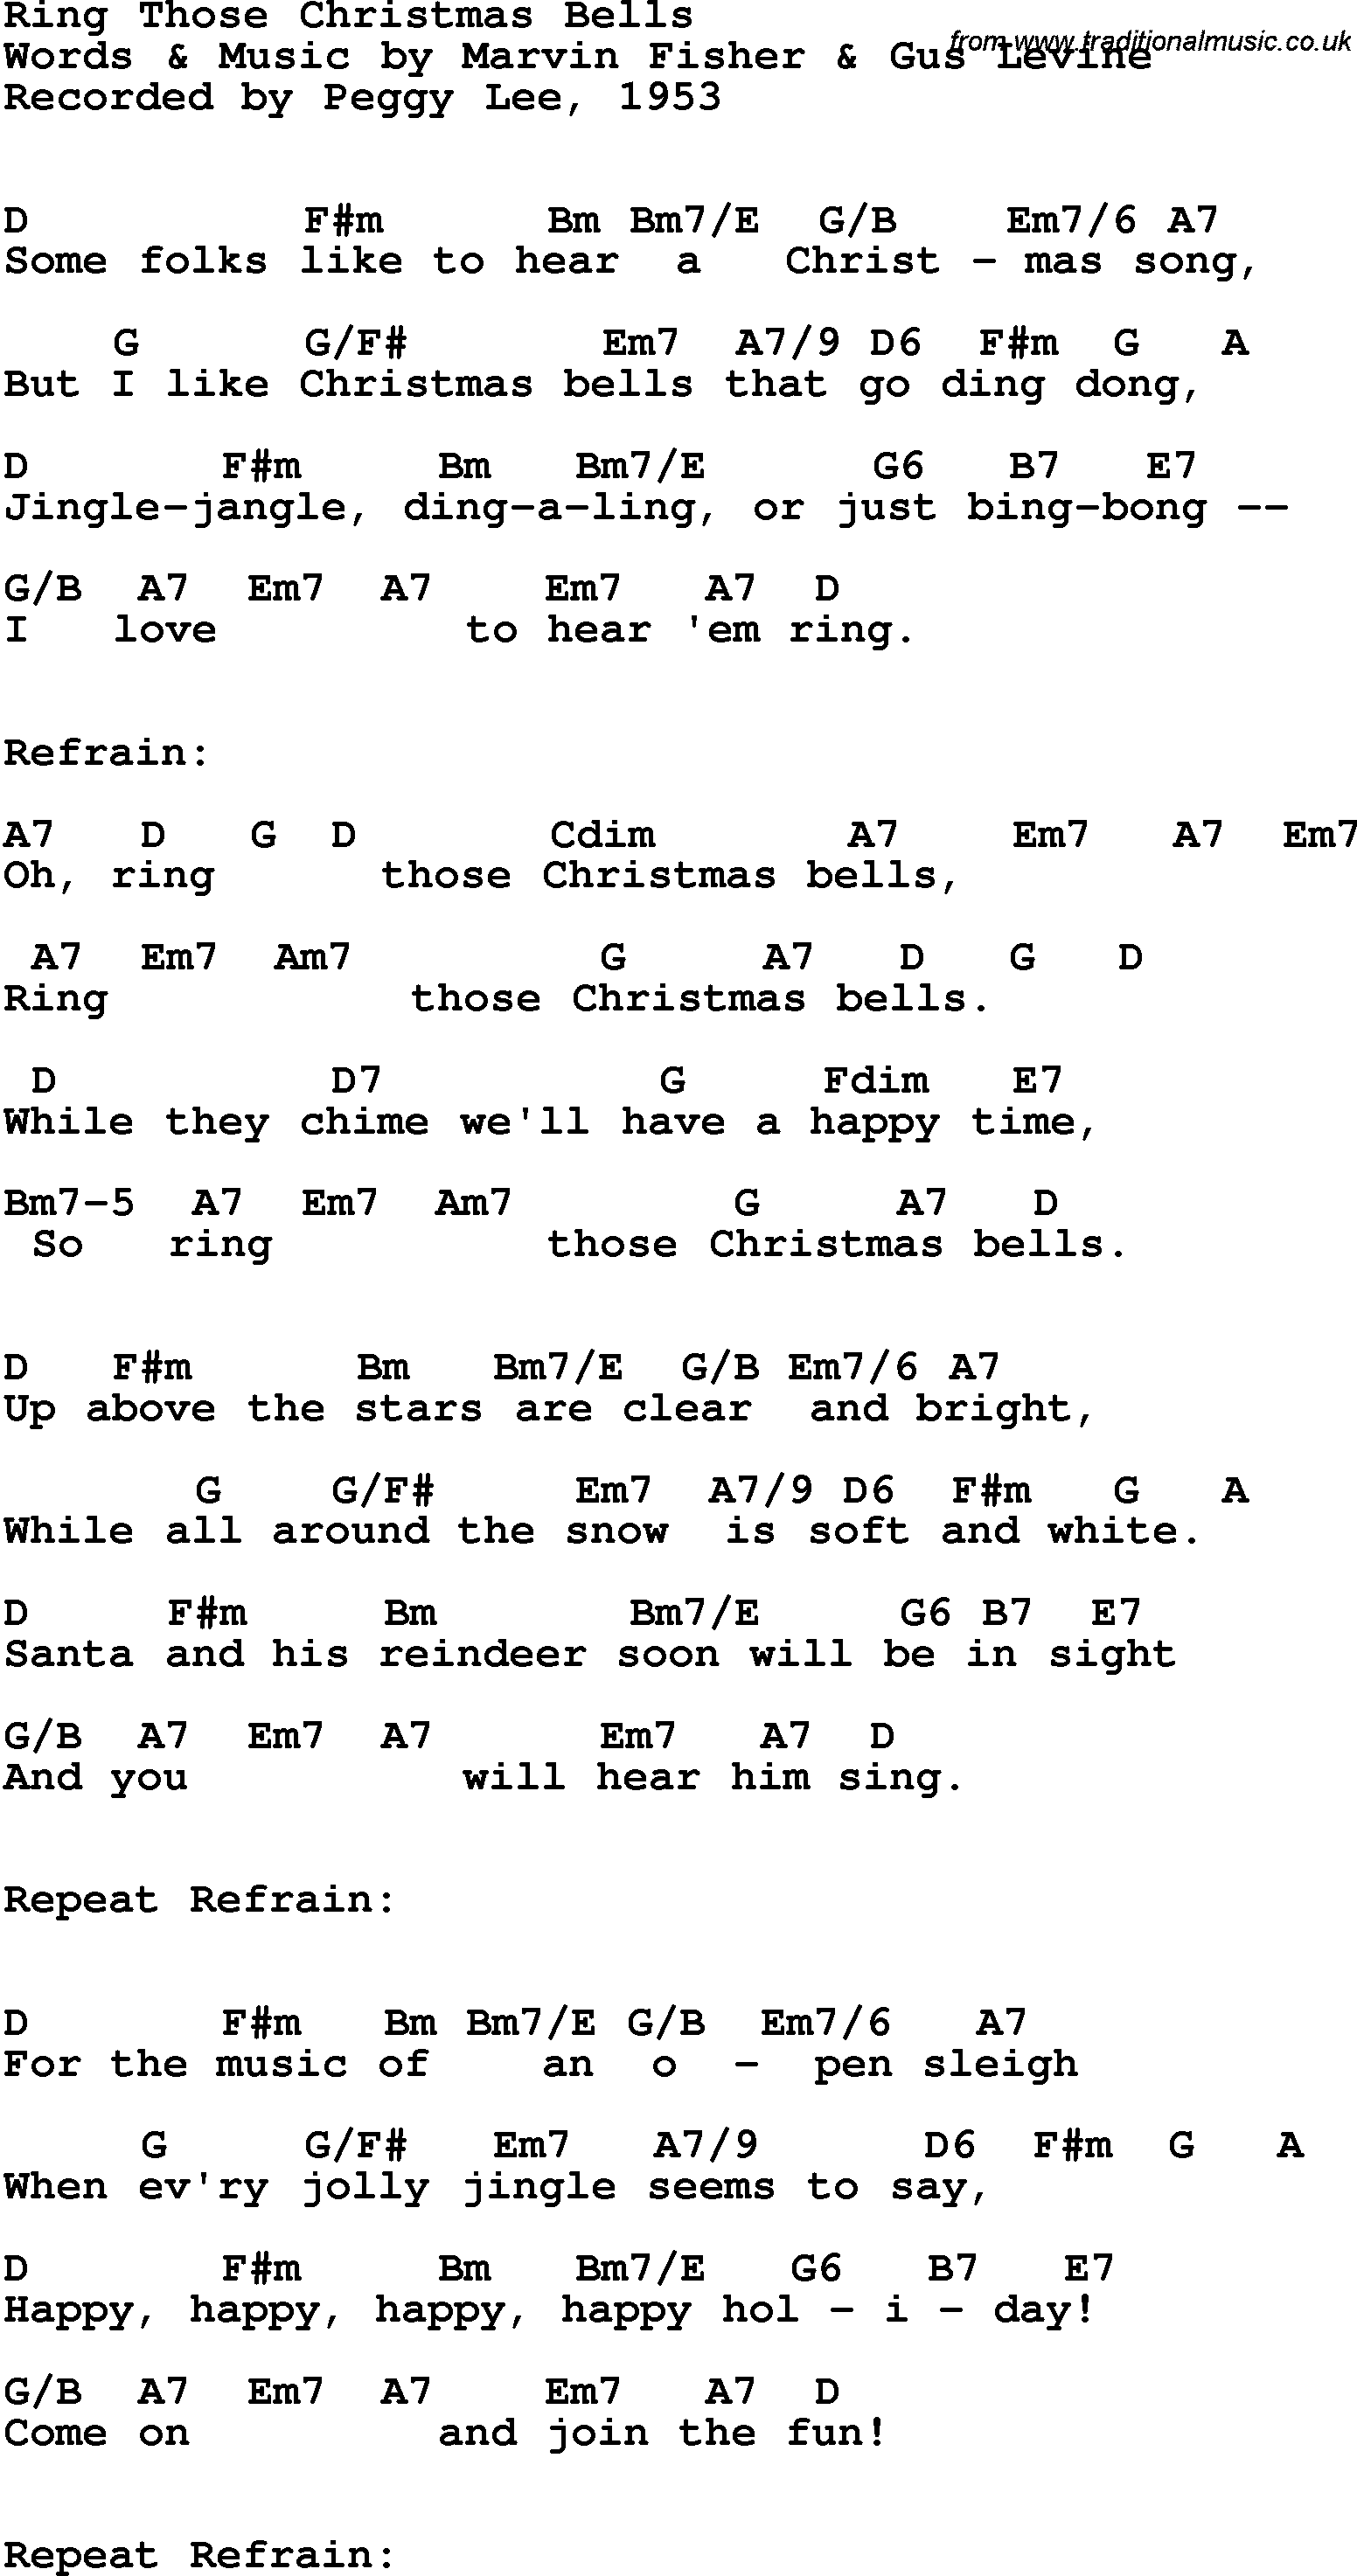 Song lyrics with guitar chords for ring those christmas